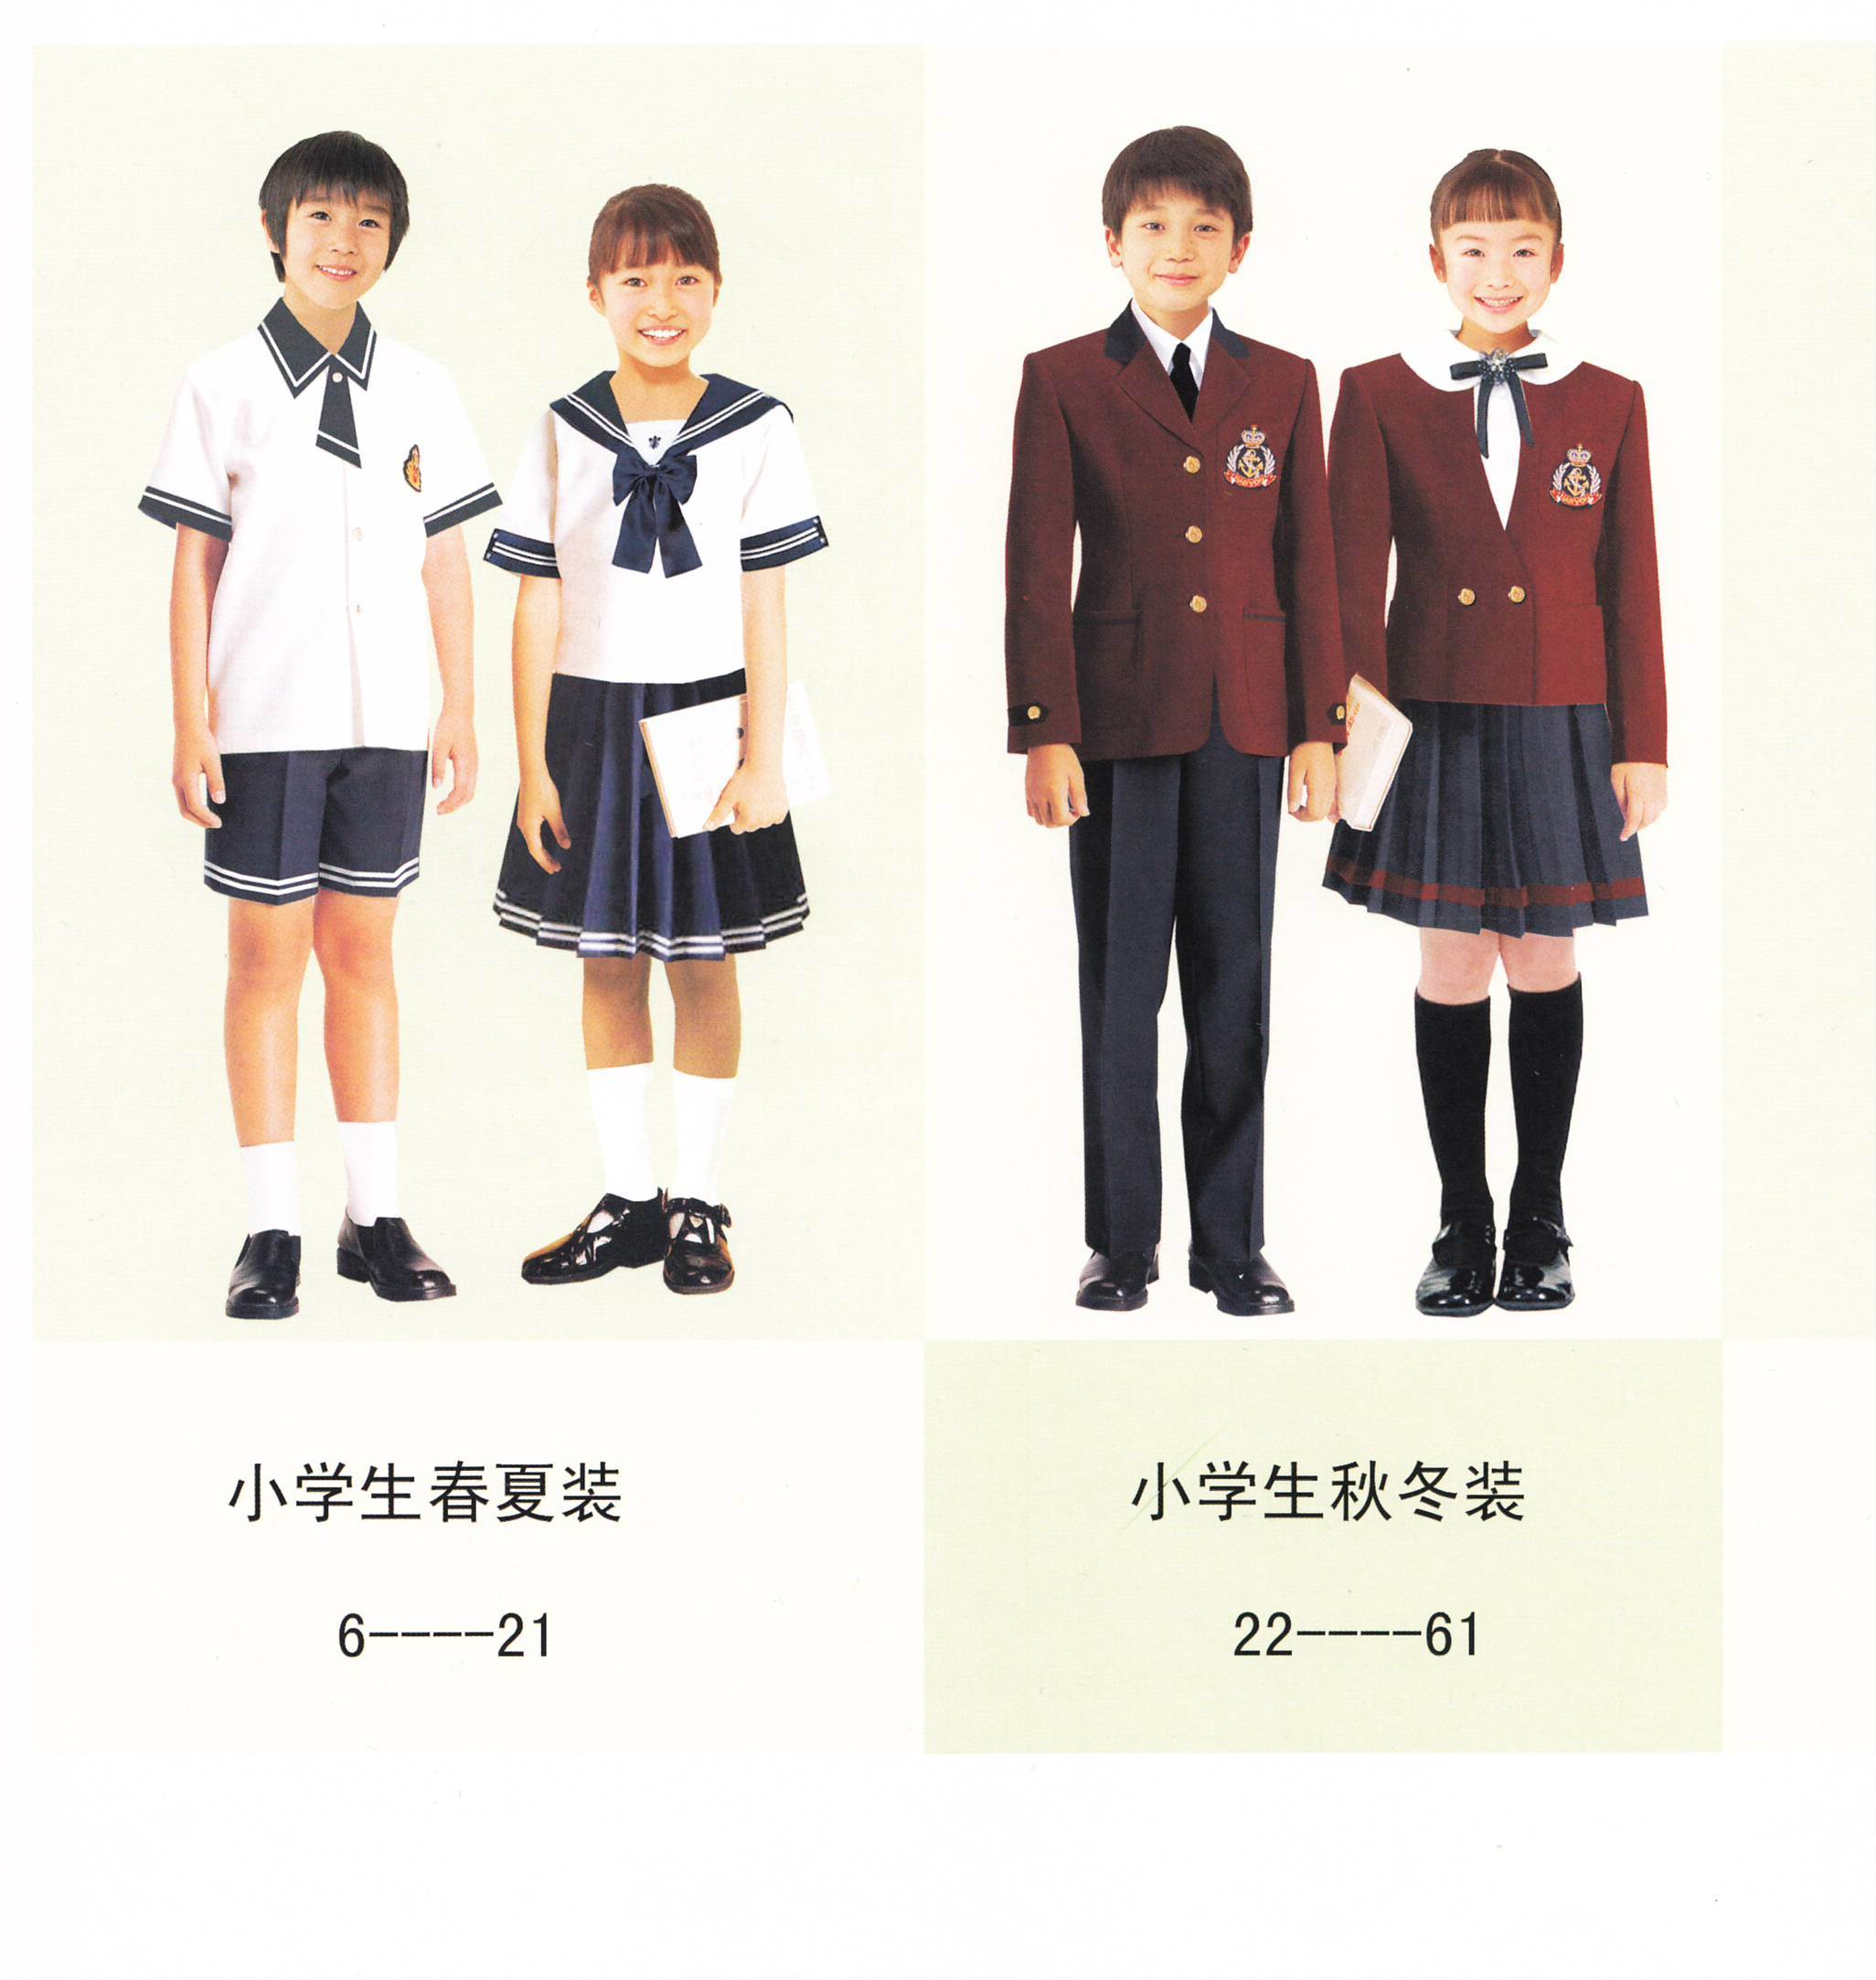 Critics, mostly students believe that wearing a school uniform is boring. Well the idea of wearing the same color and style every day to school actually is, but .